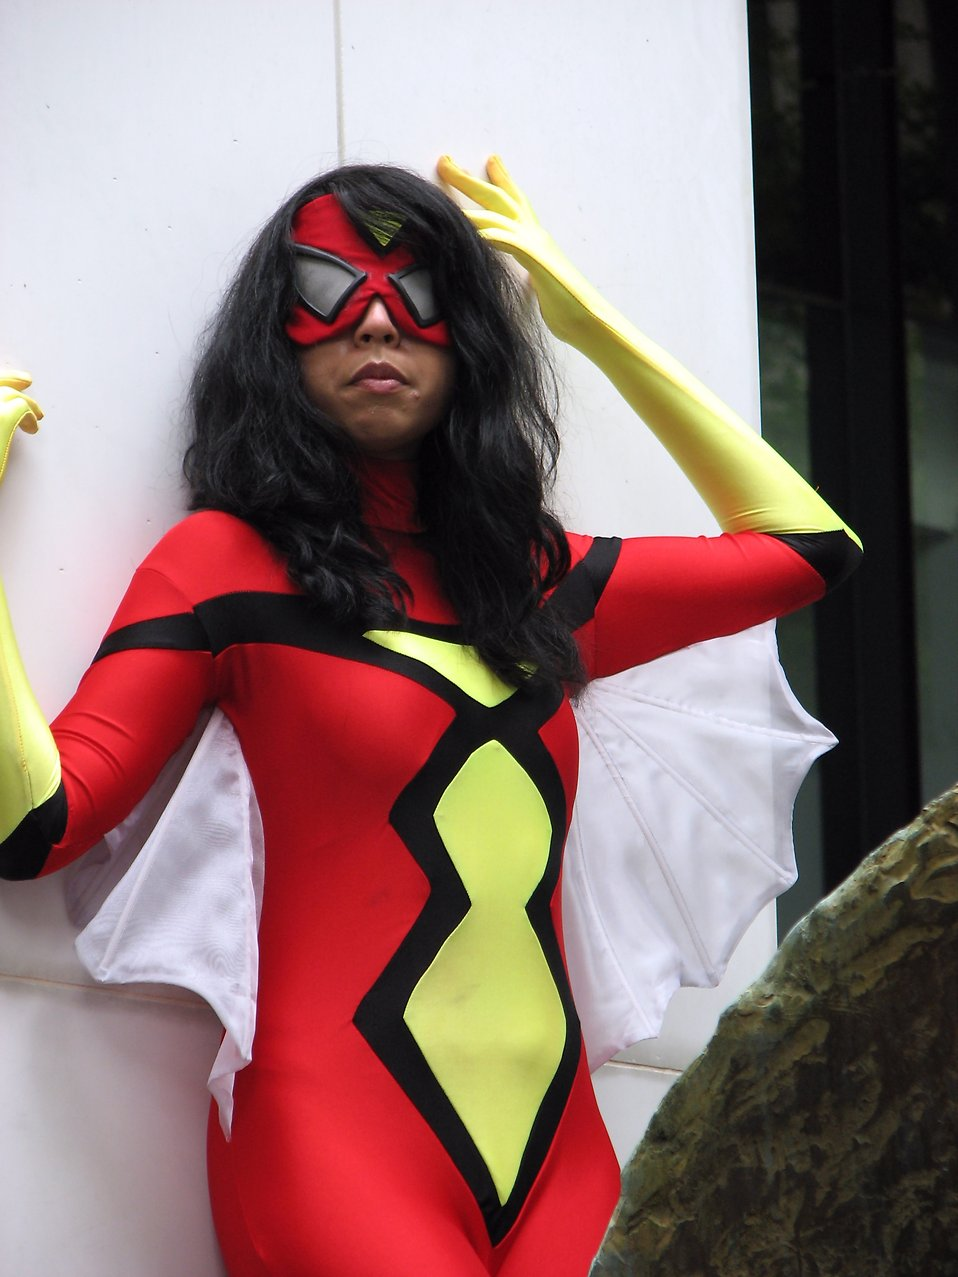 Beautiful black girl posing in a superhero costume at Dragoncon 2008 : Free Stock Photo